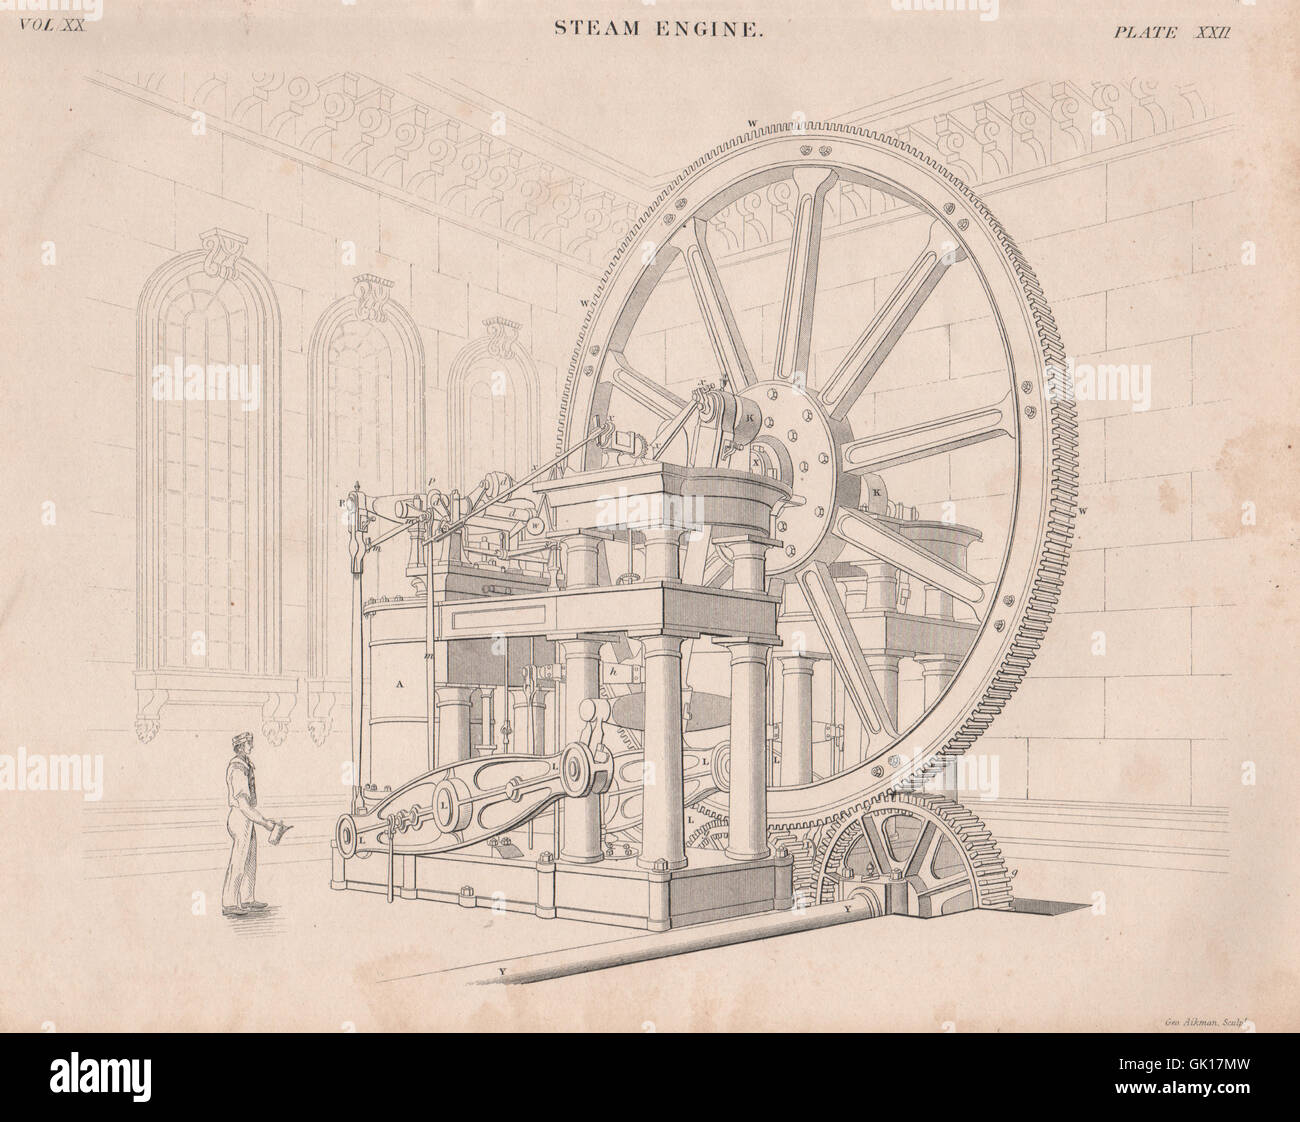 VICTORIAN ENGINEERING DRAWING. Steam engine, antique print 1860 Stock Photo